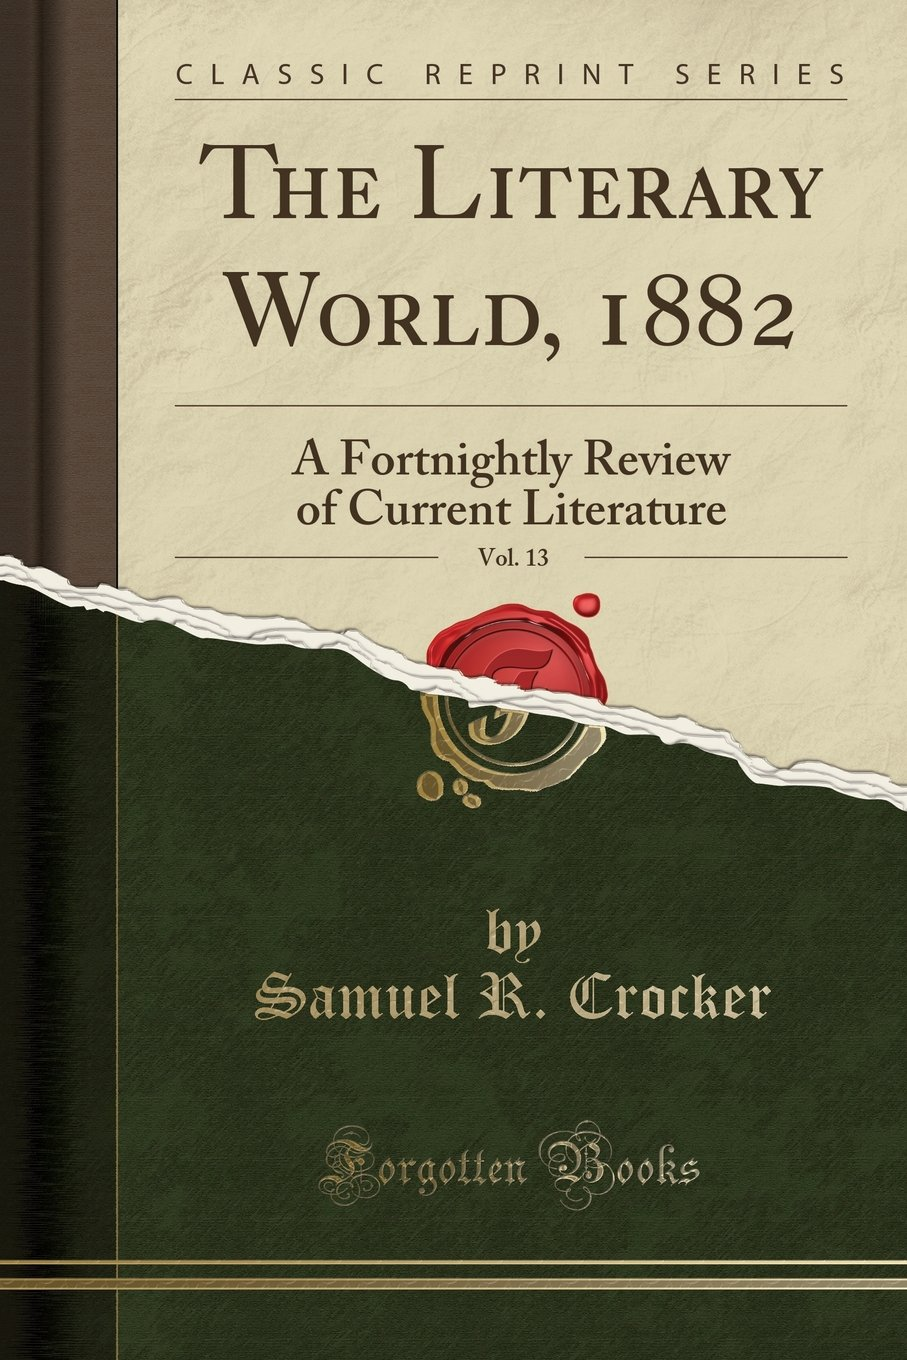 The Literary World, 1882, Vol. 13: A Fortnightly Review of Current Literature (Classic Reprint) ebook